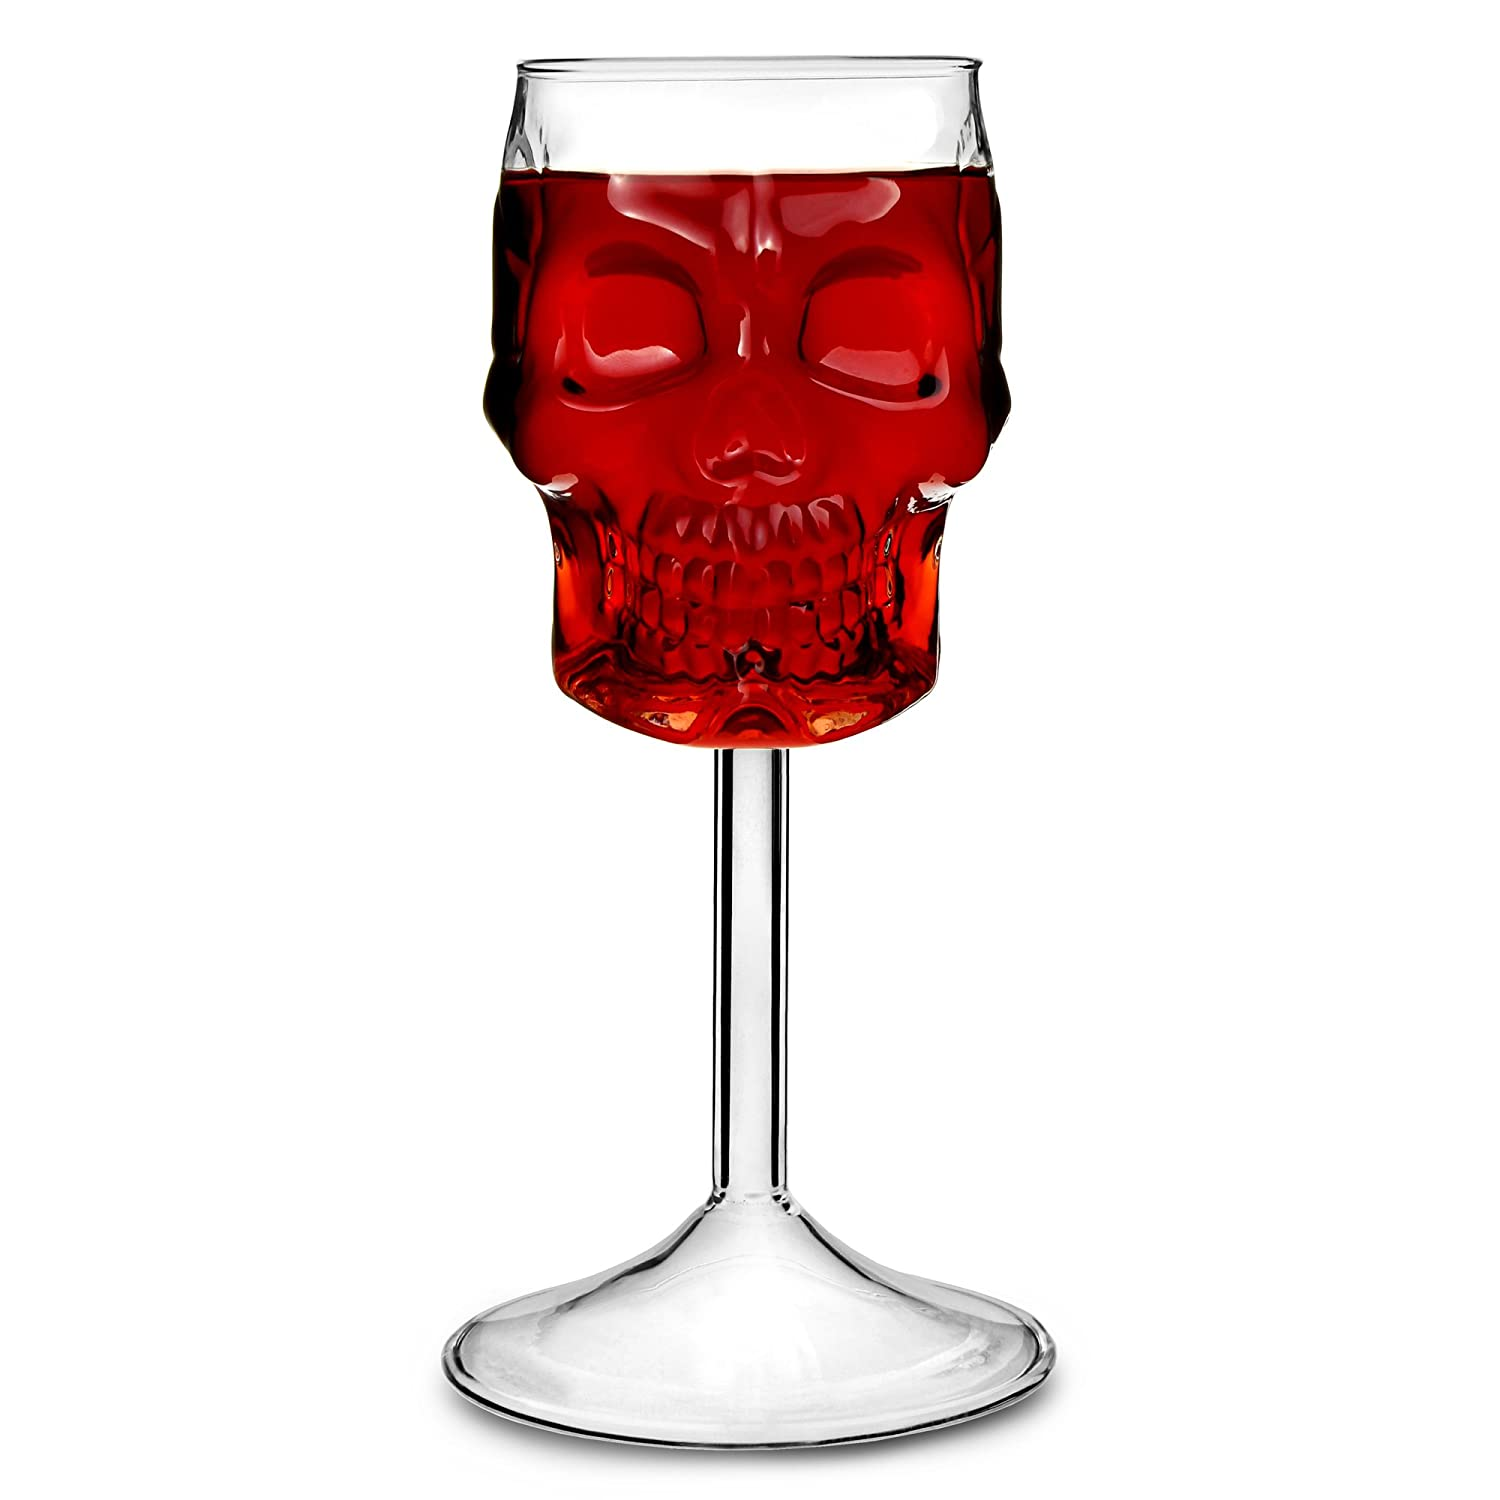 bar@drinkstuff Skull Wine Glasses 16oz/450ml - Case of 2 - Novelty Halloween Glassware